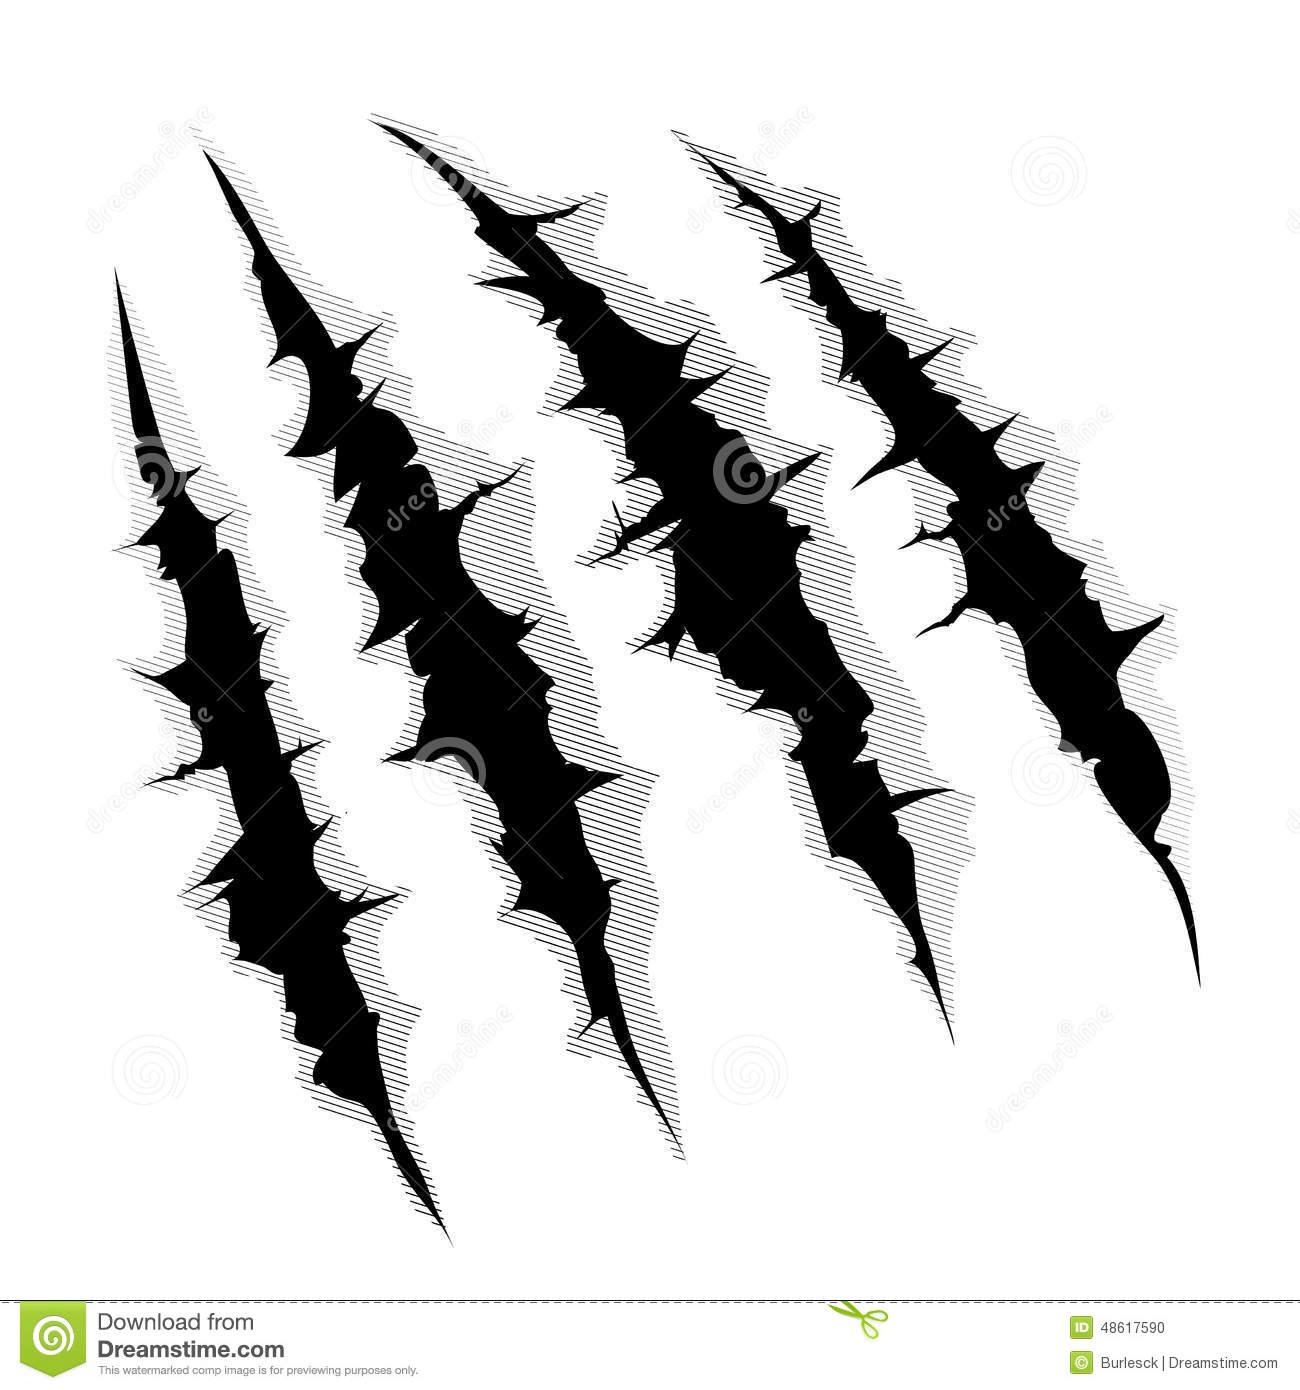 hight resolution of an illustration of a monster claw or hand scratch or rip through white background